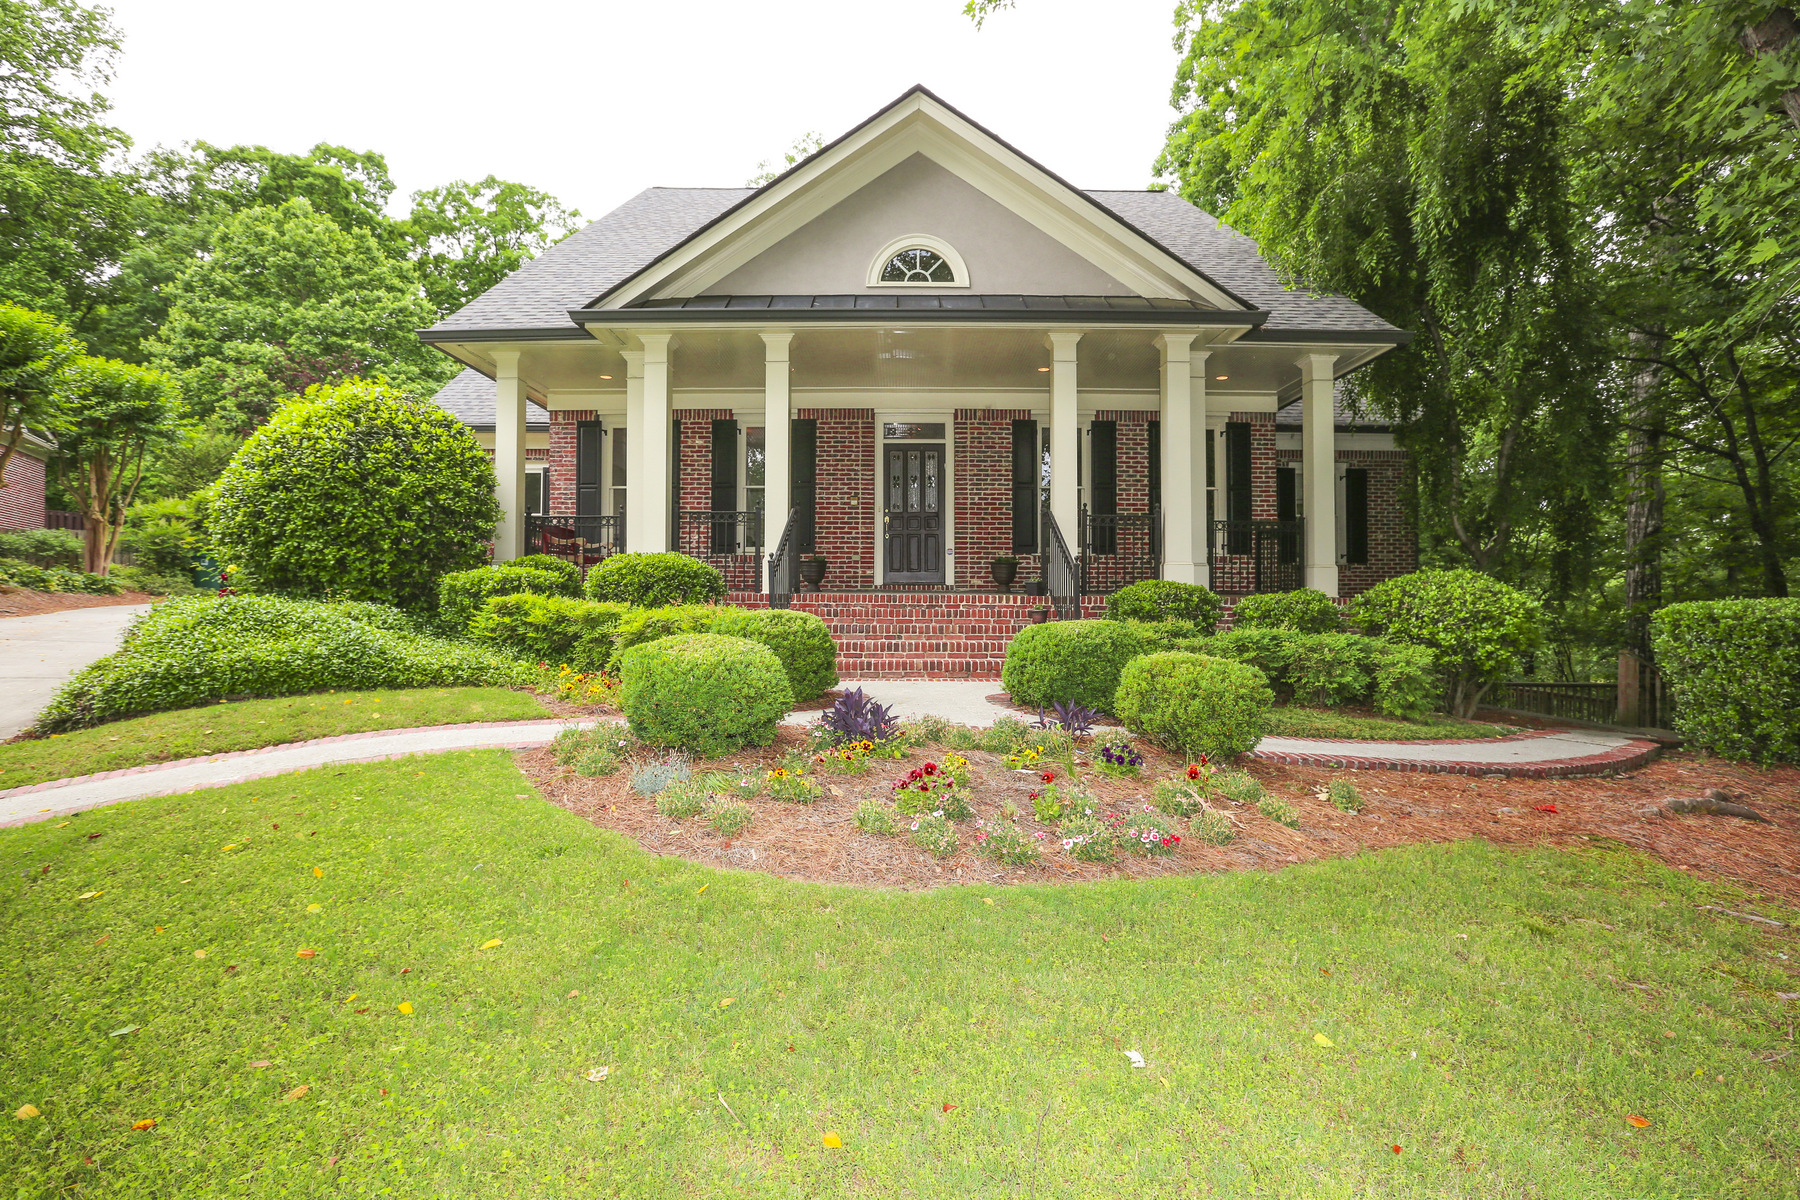 Single Family Home for Sale at Beautiful Brick Traditional On Cul-de-sac In Sought After Gated Community 2313 Garden Park Dr Smyrna, Georgia 30080 United States